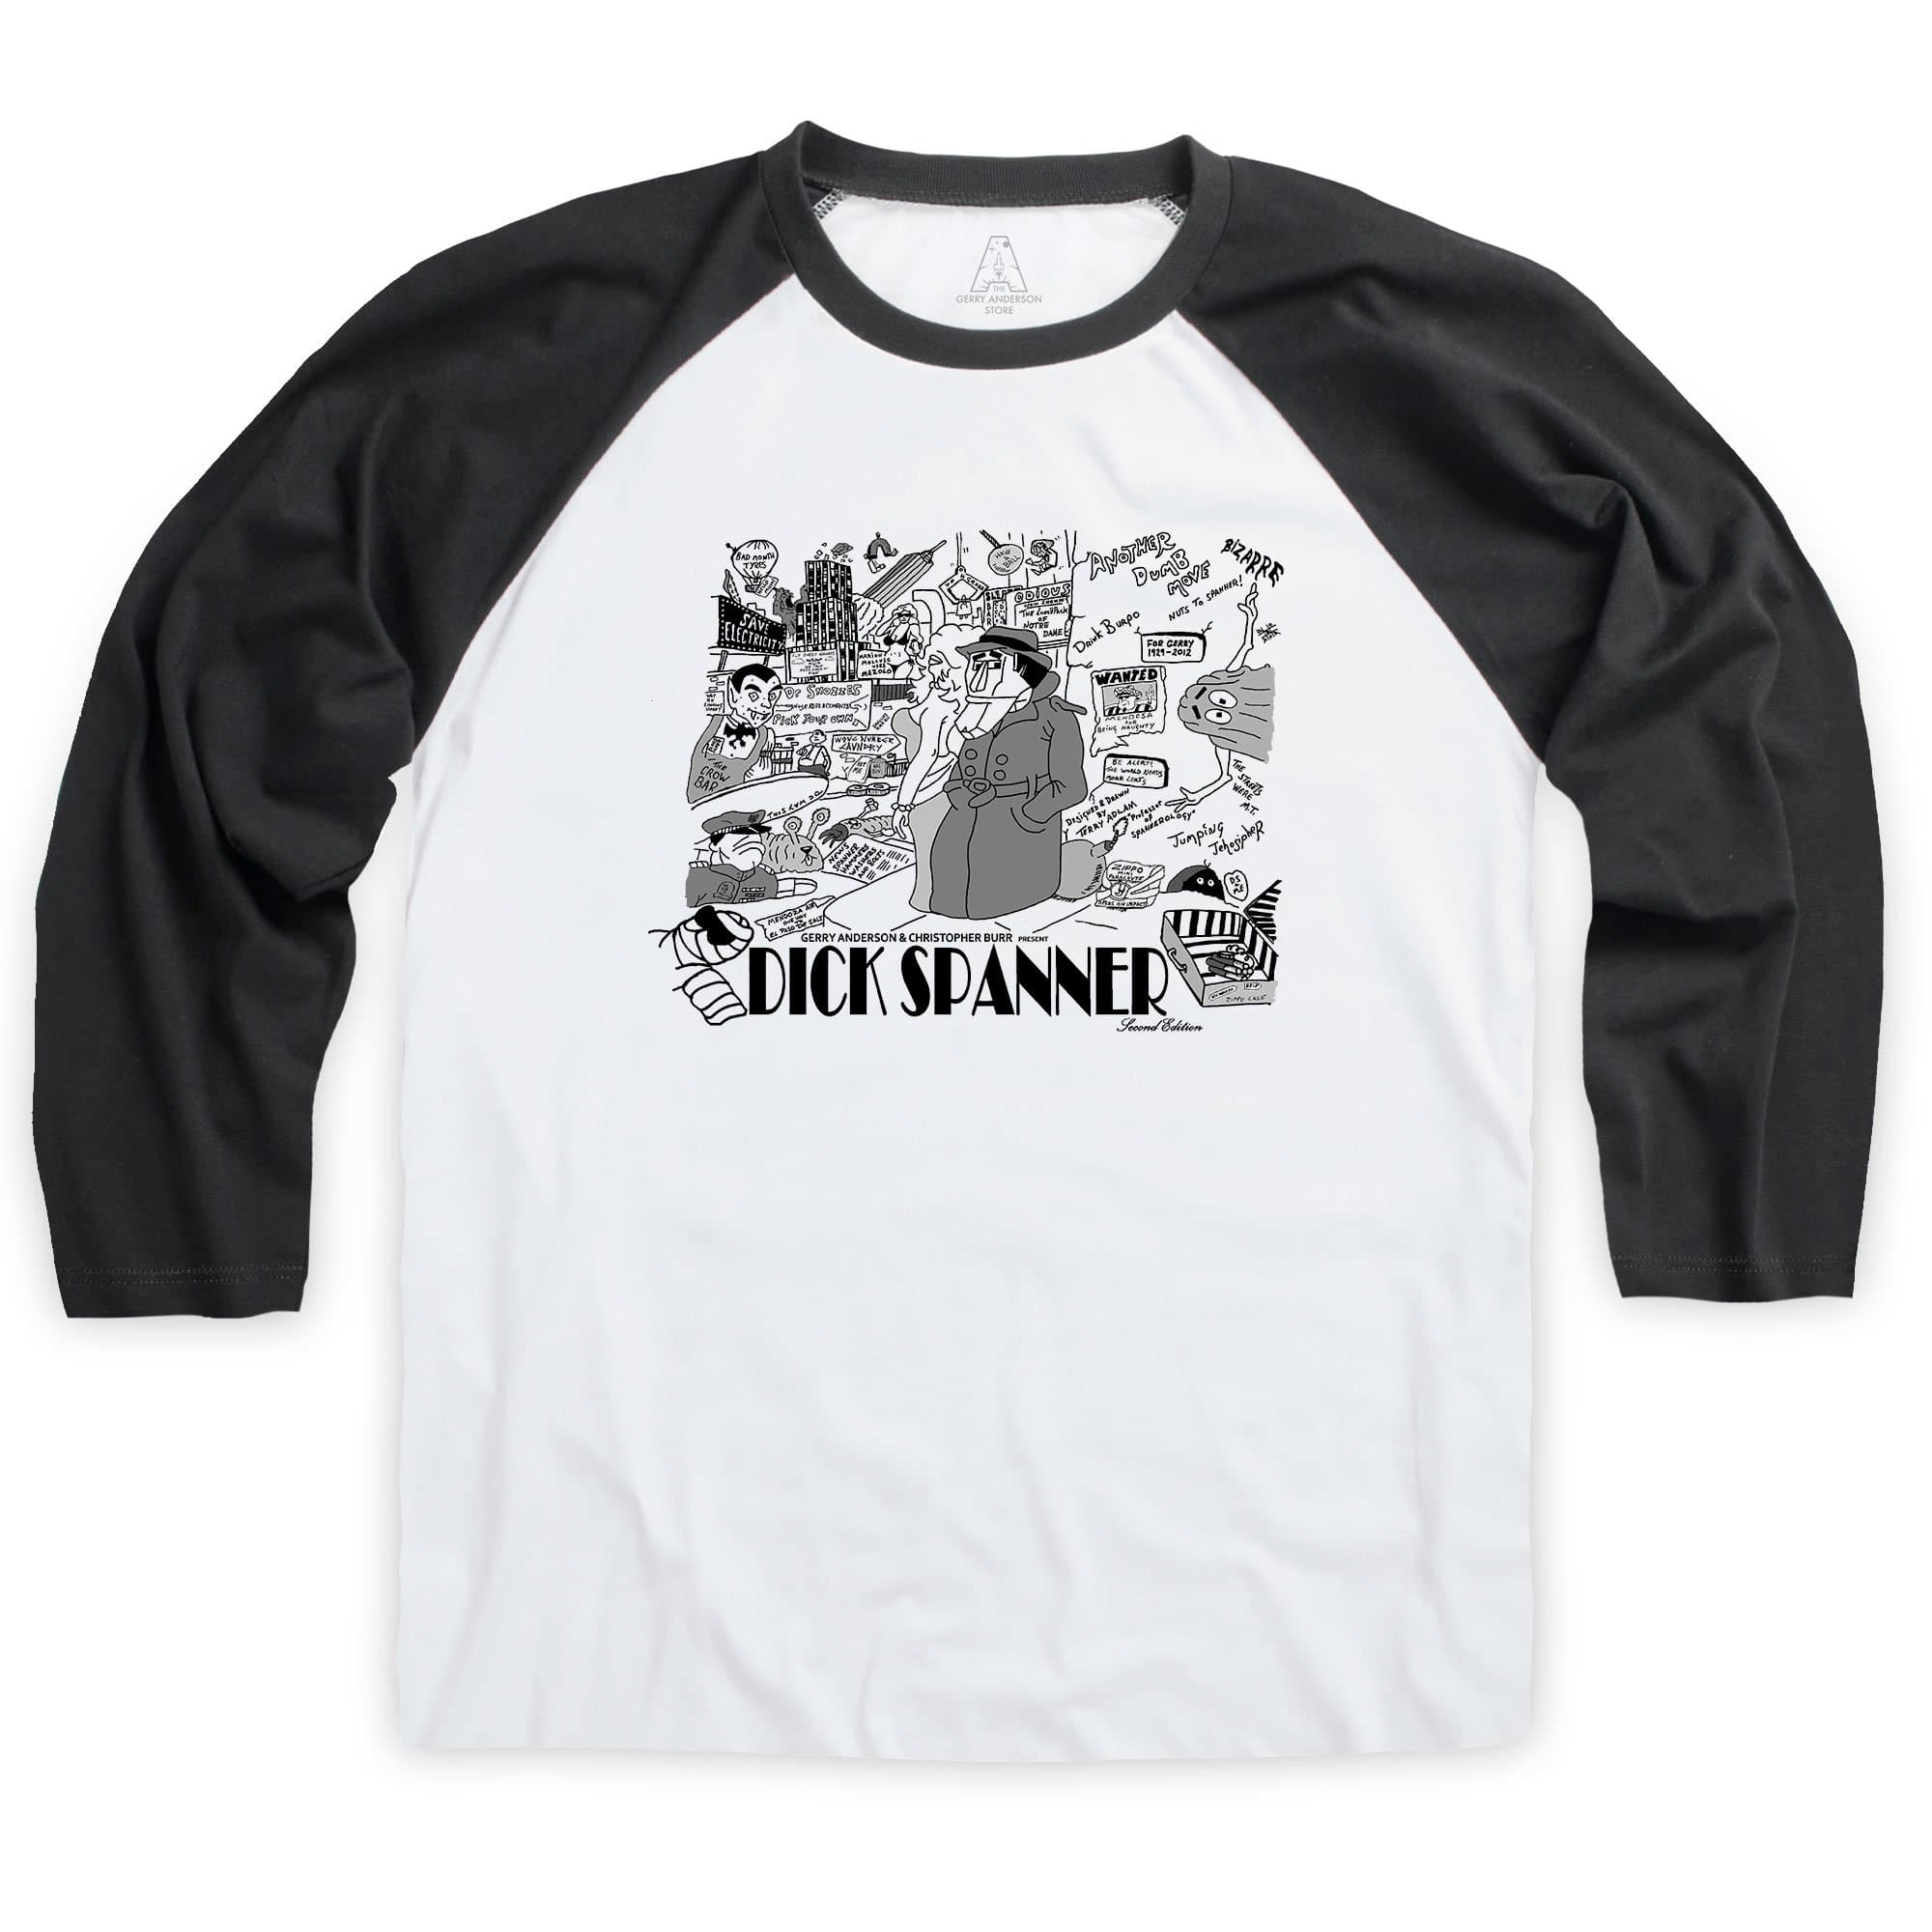 Dick Spanner Comic Strip Baseball T-Shirt [Official & Exclusive] - The Gerry Anderson Store